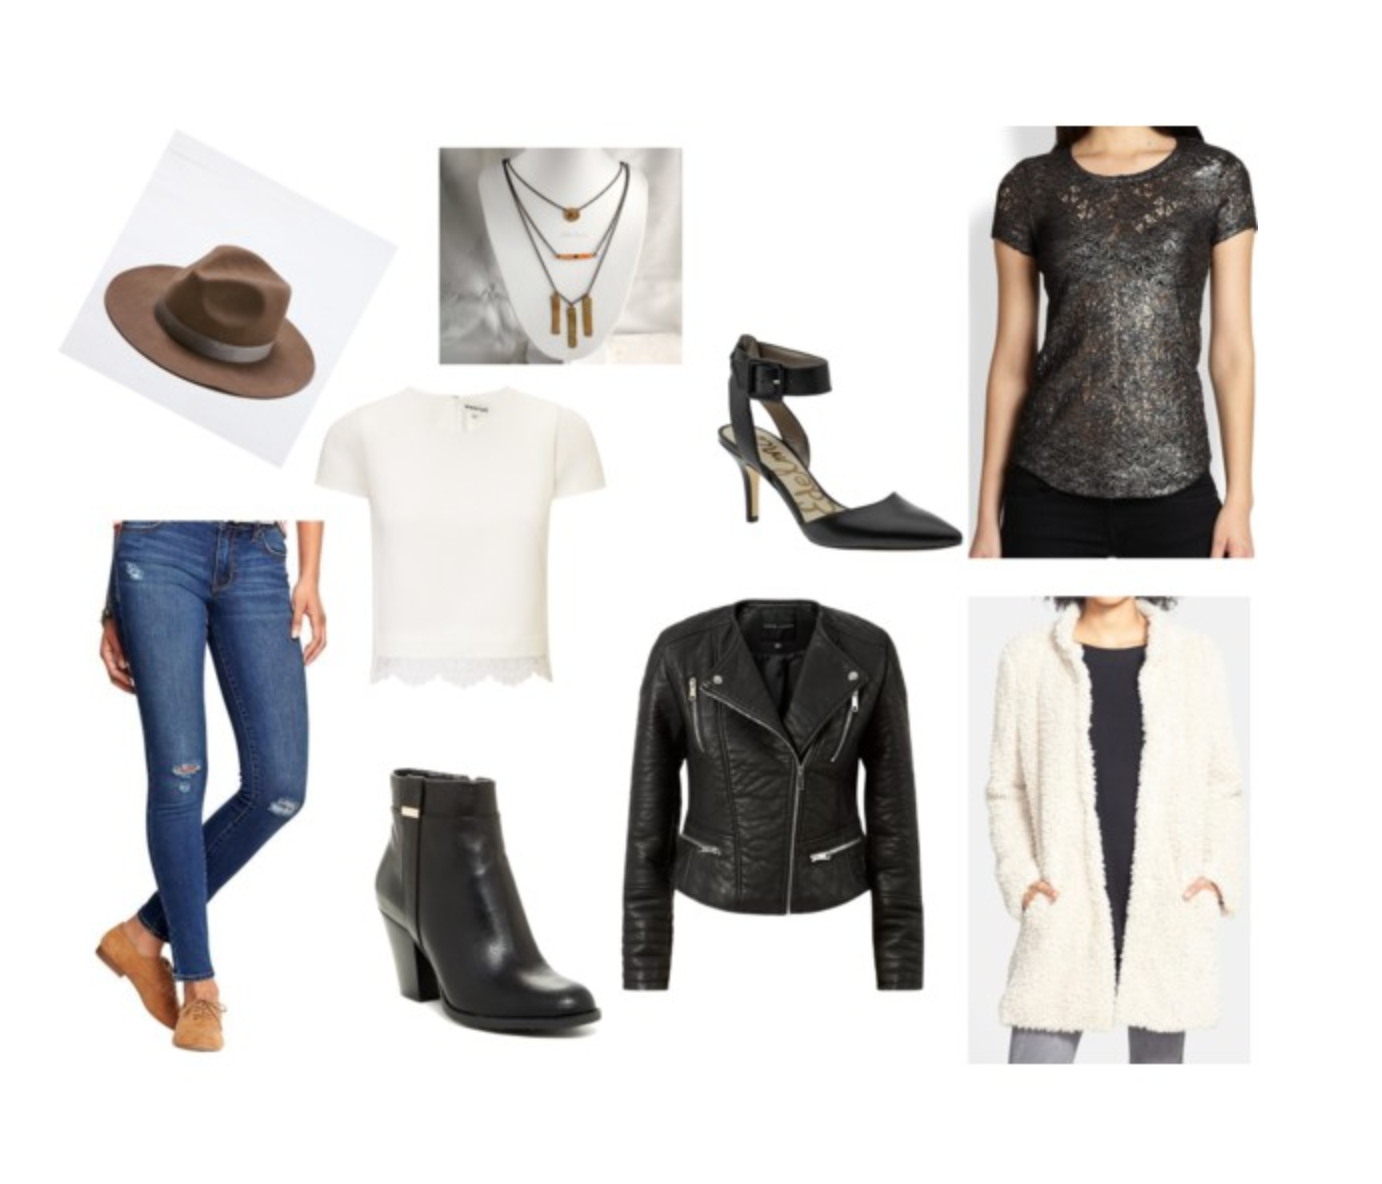 Thanks to Jaclyn, she's created a shopping list right from our shoot here on  Polyvore  to find these same styles for yourself.